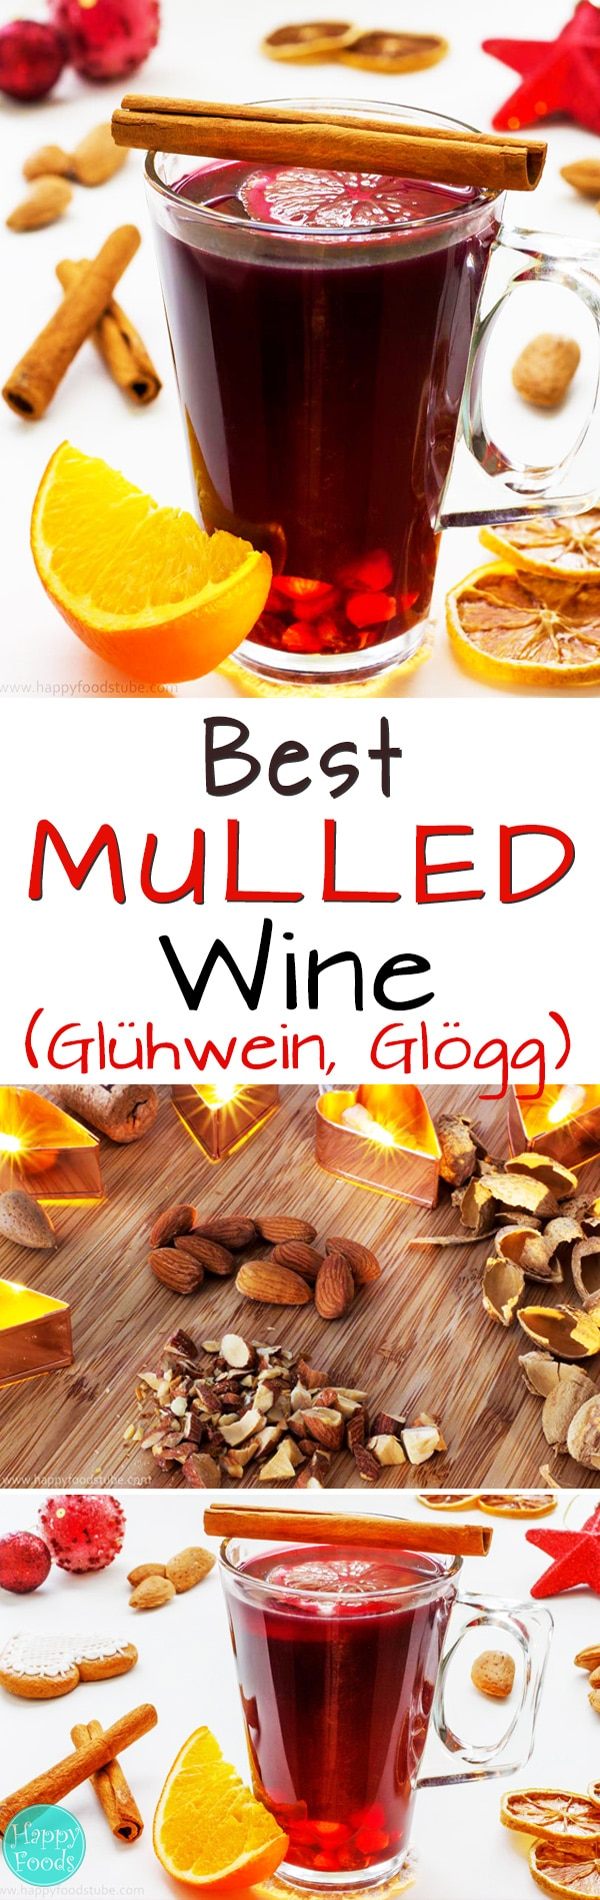 Mulled Wine (Glühwein, Glögg) is a typical winter drink. It's made of red wine to which mulling spices, sugar, citrus & raisins. Best Christmas drink recipe. #mulledwine #howtomake #winterdrinks #drinks #holidaydrinks #christmasdrinks #holidaypunch #glögg #glögi #glühwein #vinchaud #vinfiert